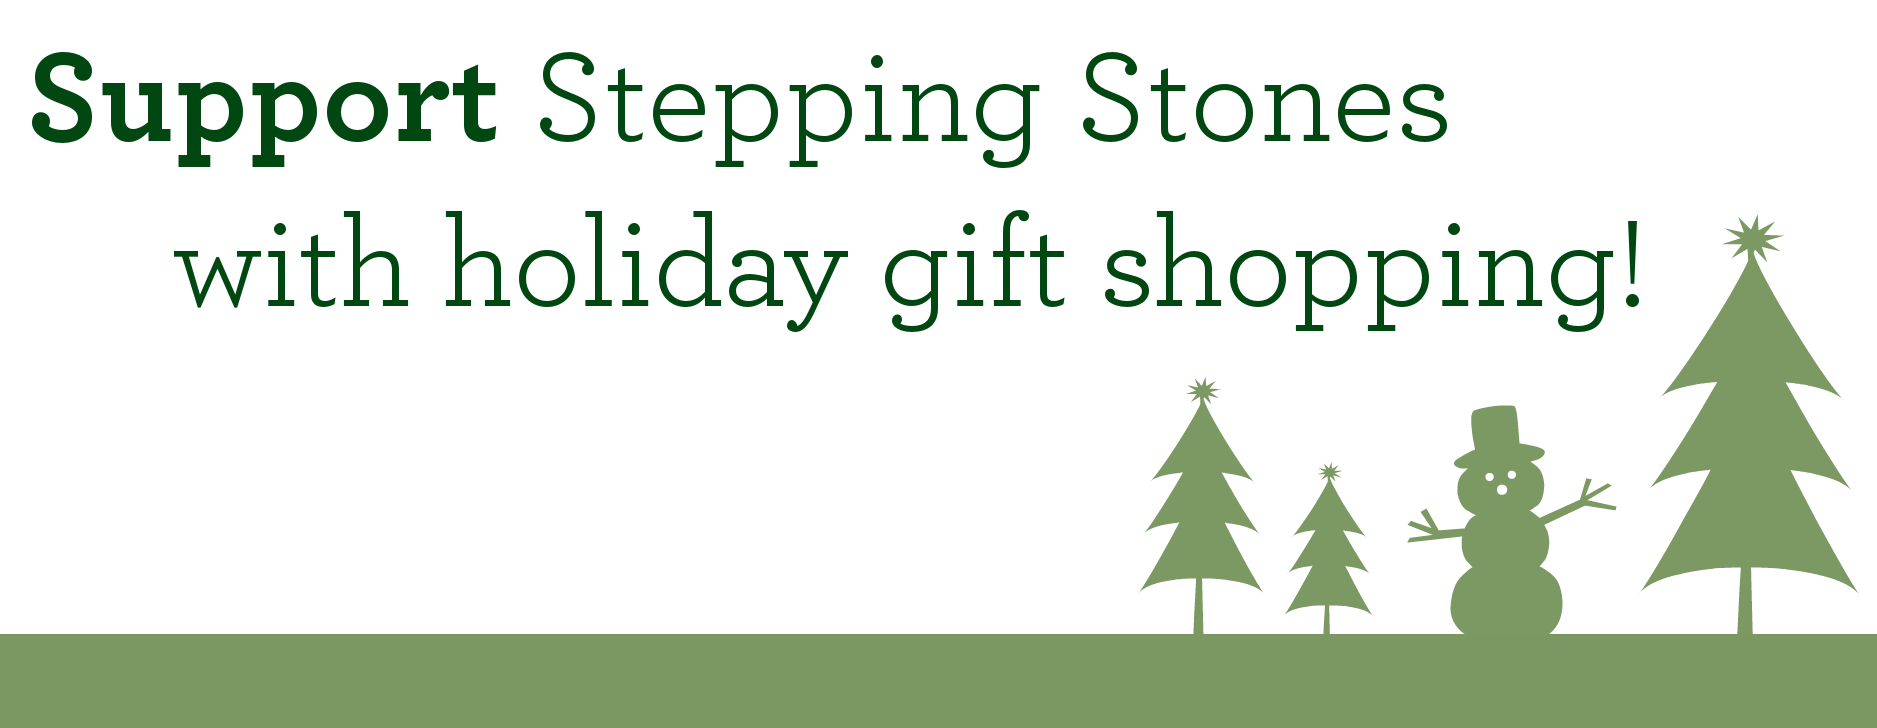 Holiday Shopping for Stepping Stones I Cincinnati, Ohio